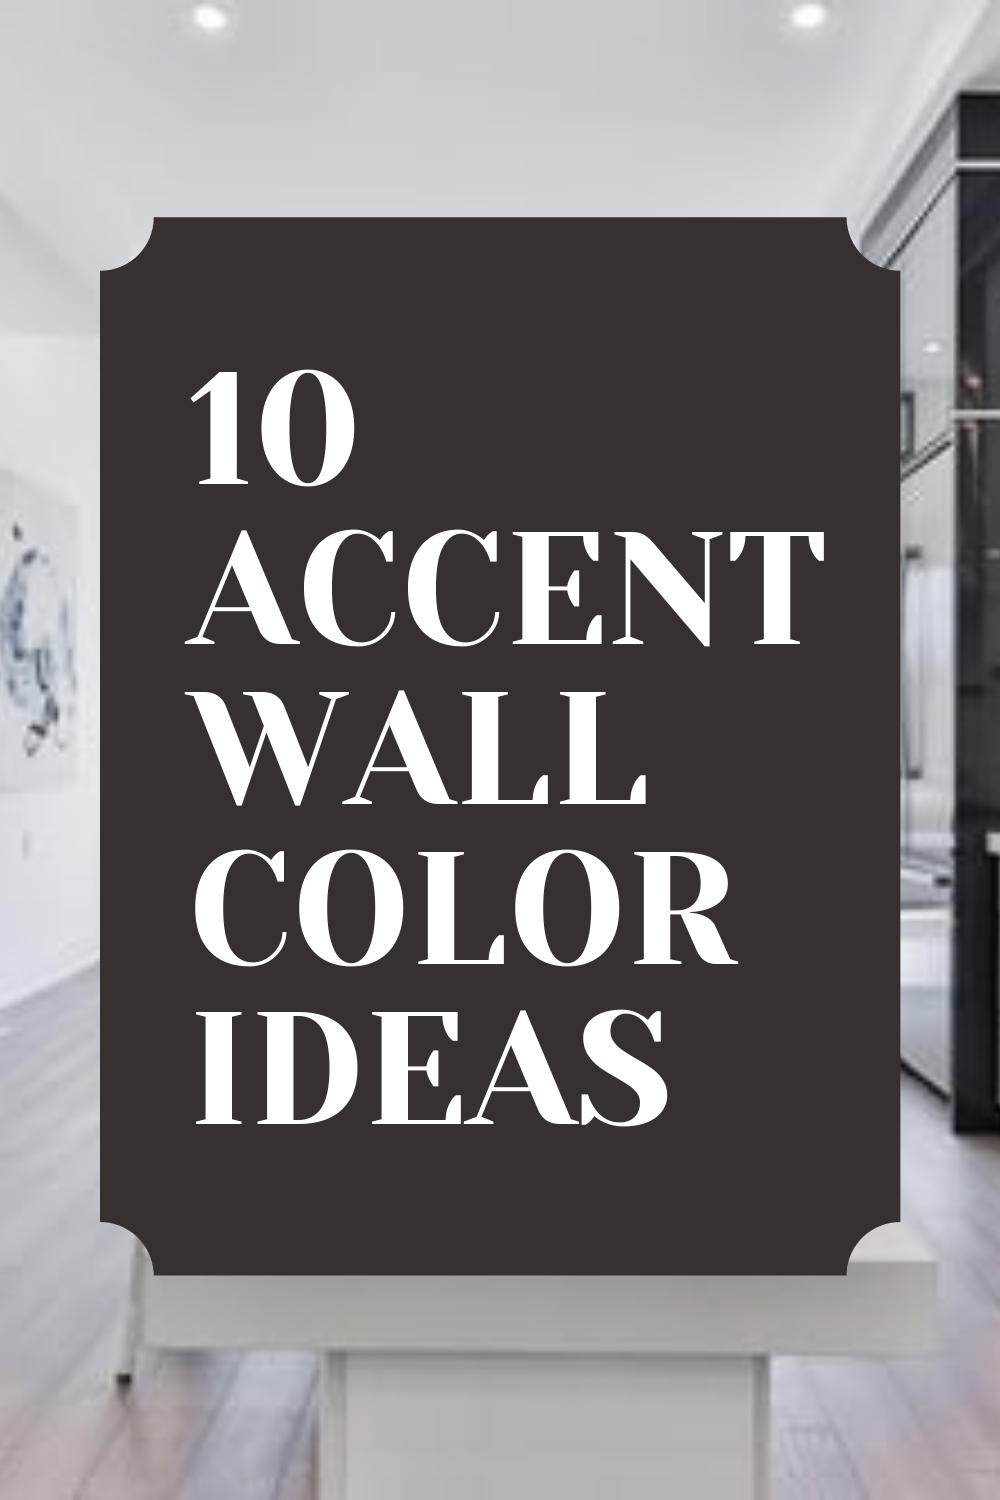 #accentwallideas#wallcolors#homedecor #homedecoration #diyhomedecor #homedecorating #inspire_me_home_decor #decorhome #homedecorideas #homedecorlovers #homedecorationideas #homeanddecor #decorateyourhome #homedecorlovers_ #homedecorblog